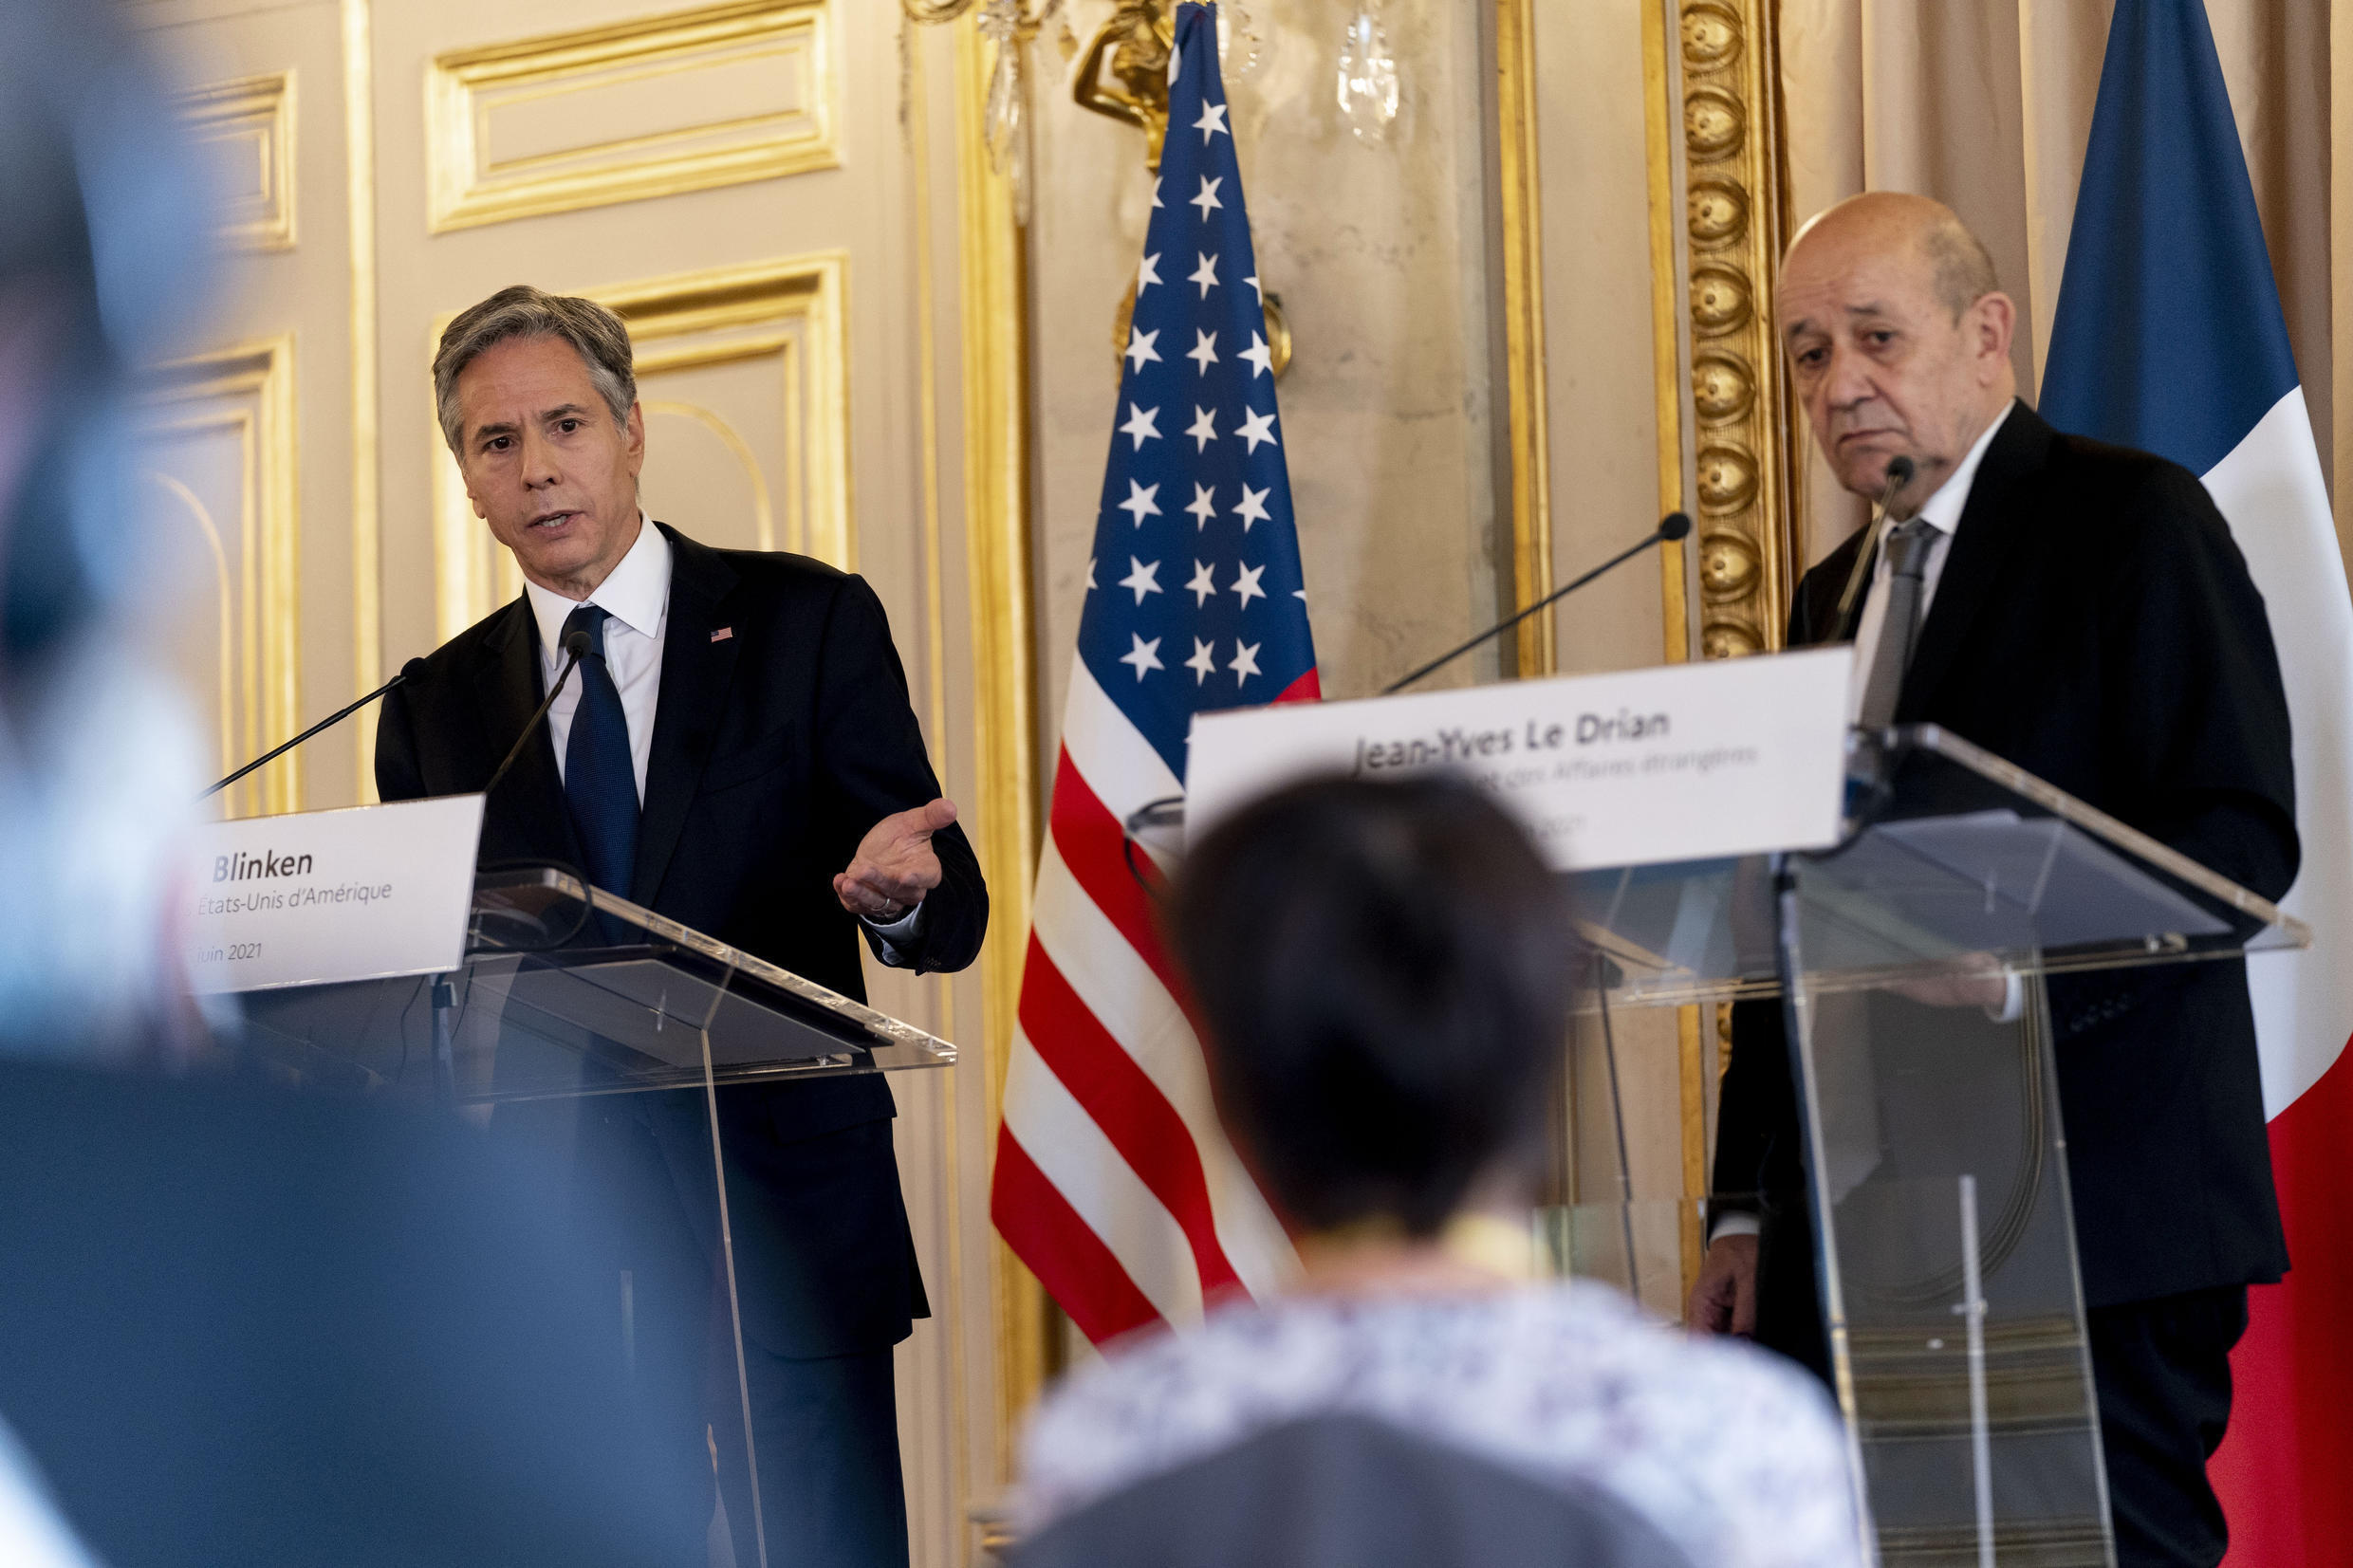 Both US Secretary of State Antony Blinken (L) and France's Foreign Minister Jean-Yves Le Drian urged Iran to return to the nuclear accord